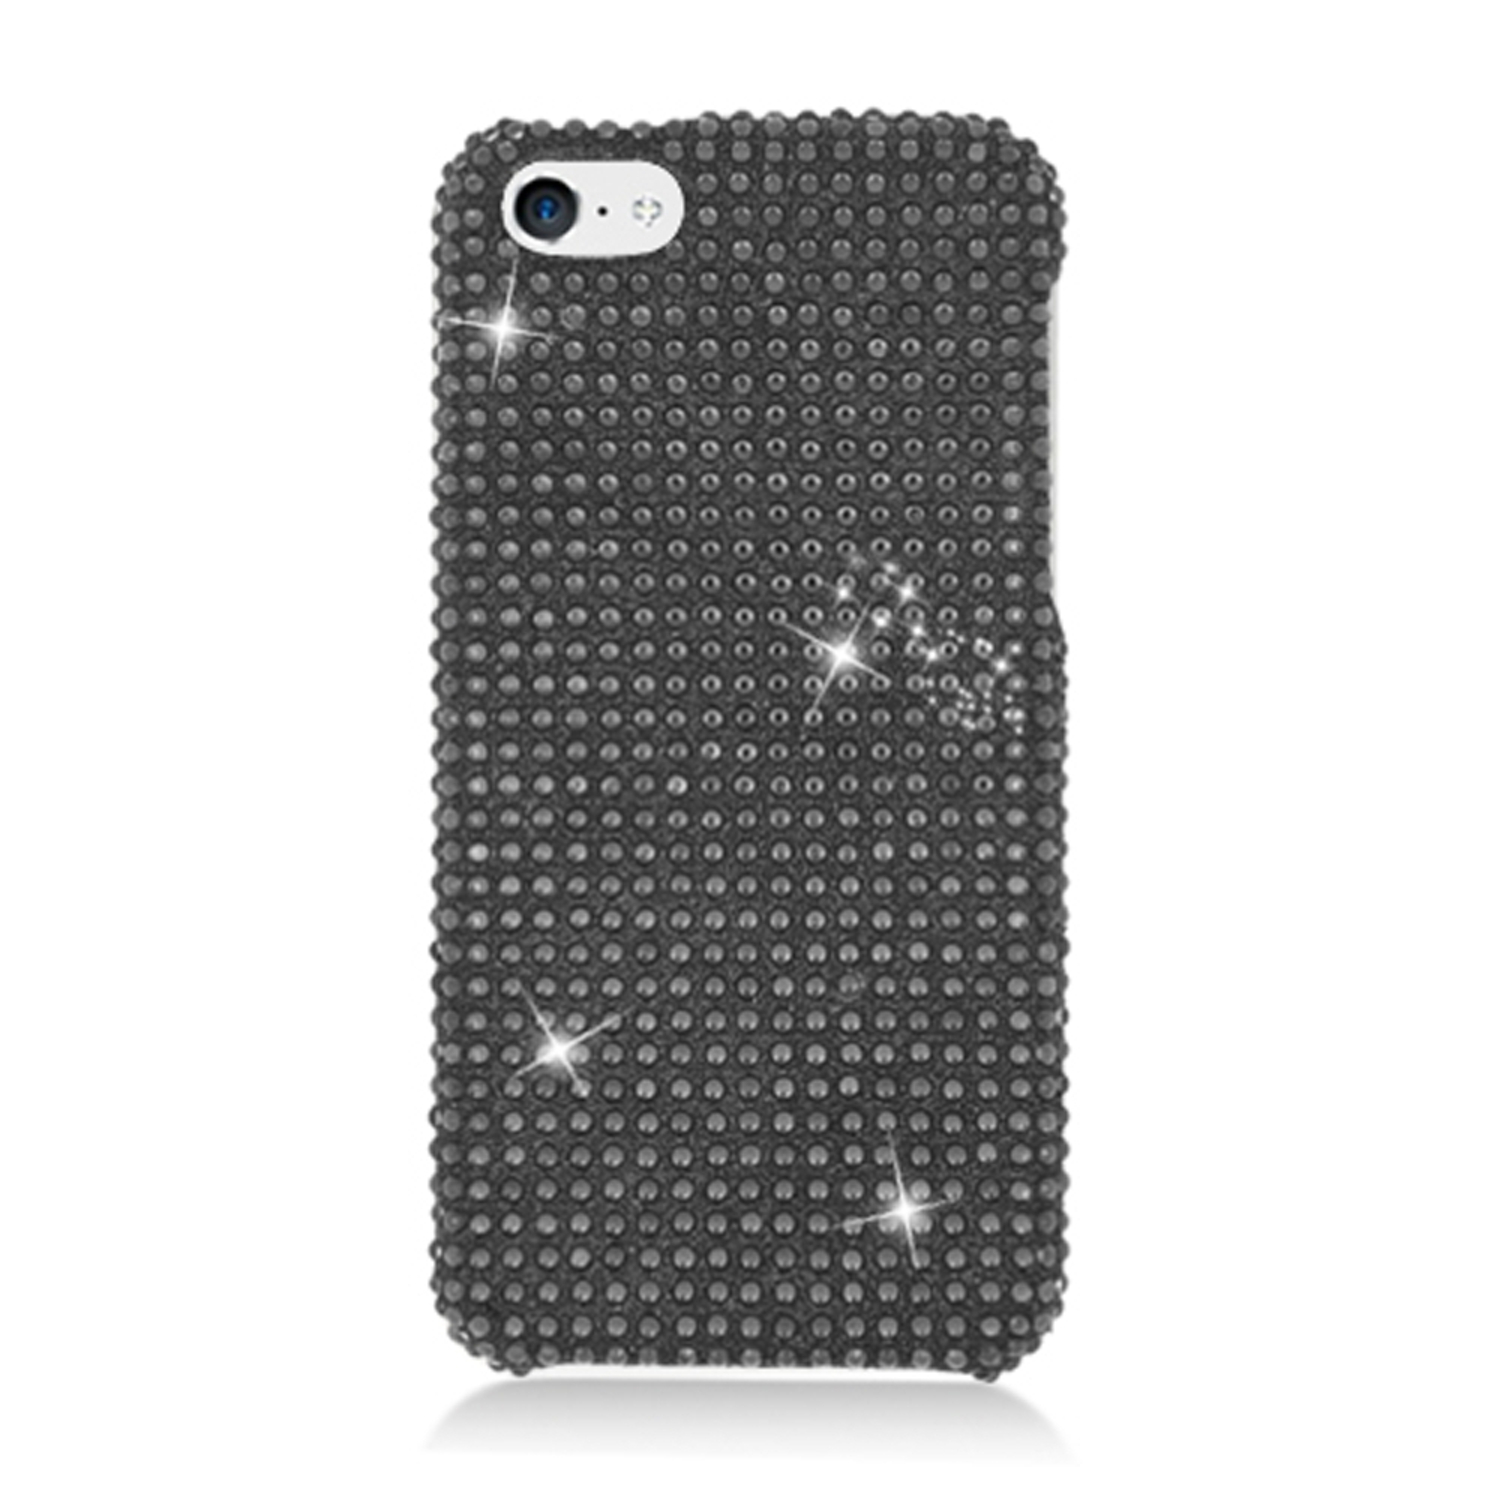 iPhone 5C Case, by Insten Rhinestone Diamond Bling Hard Snap-in Case Cover For Apple iPhone 5C